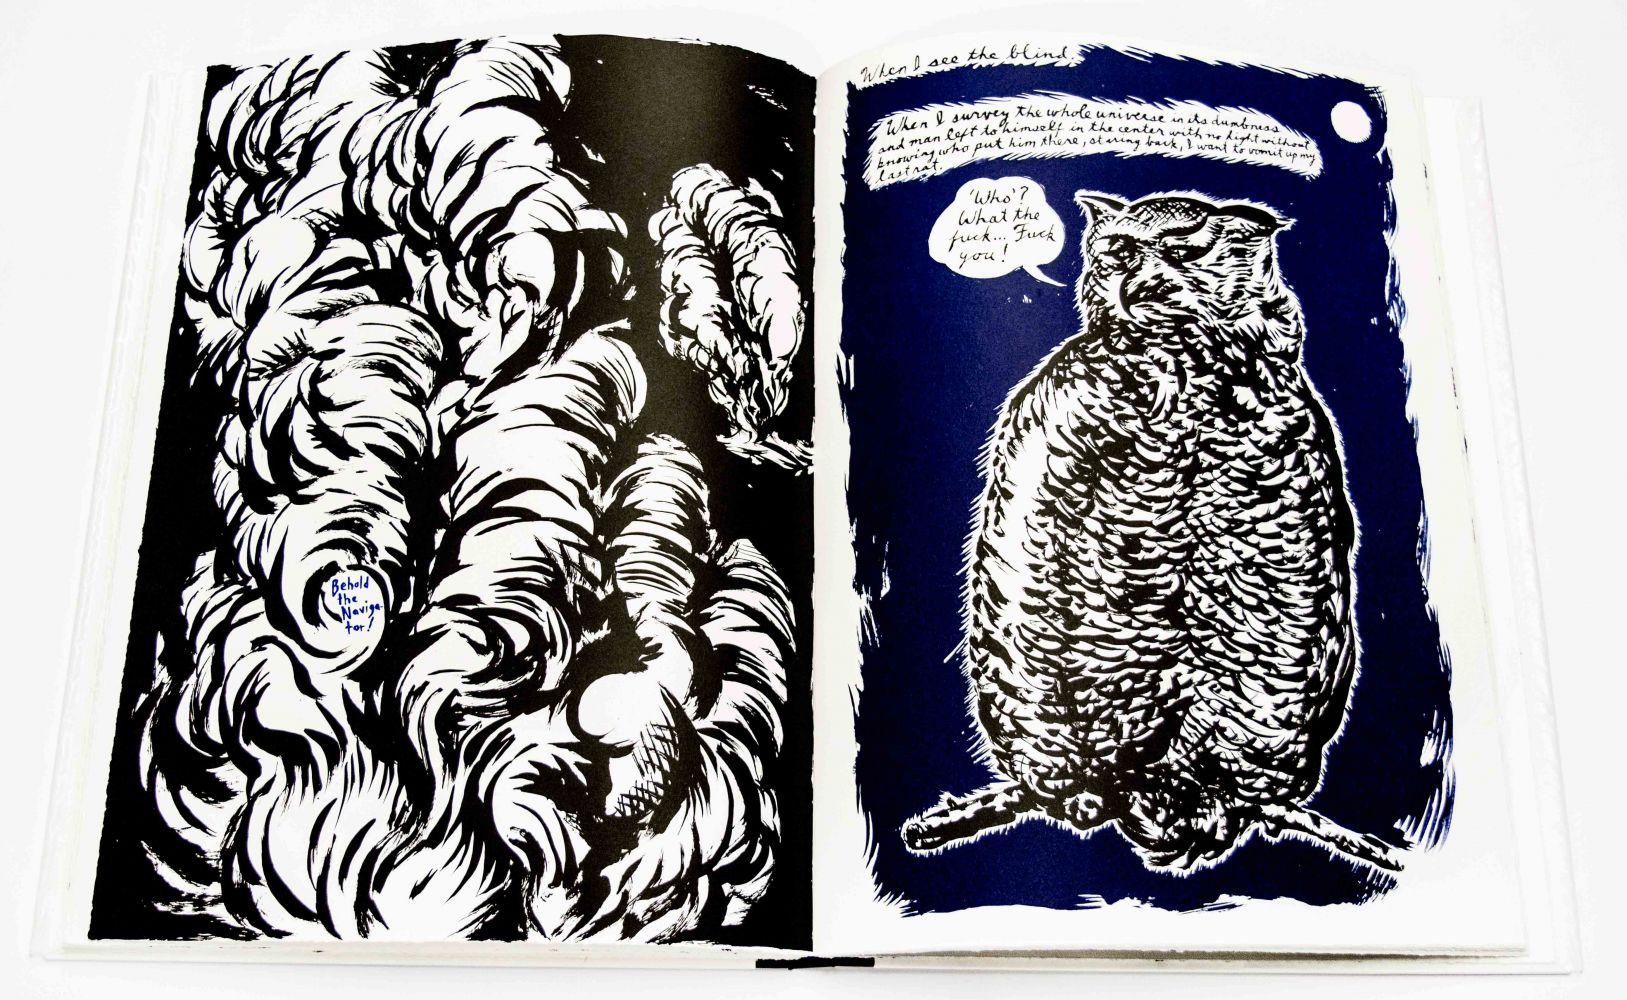 Raymond Pettibon Plots on Loan, 2001